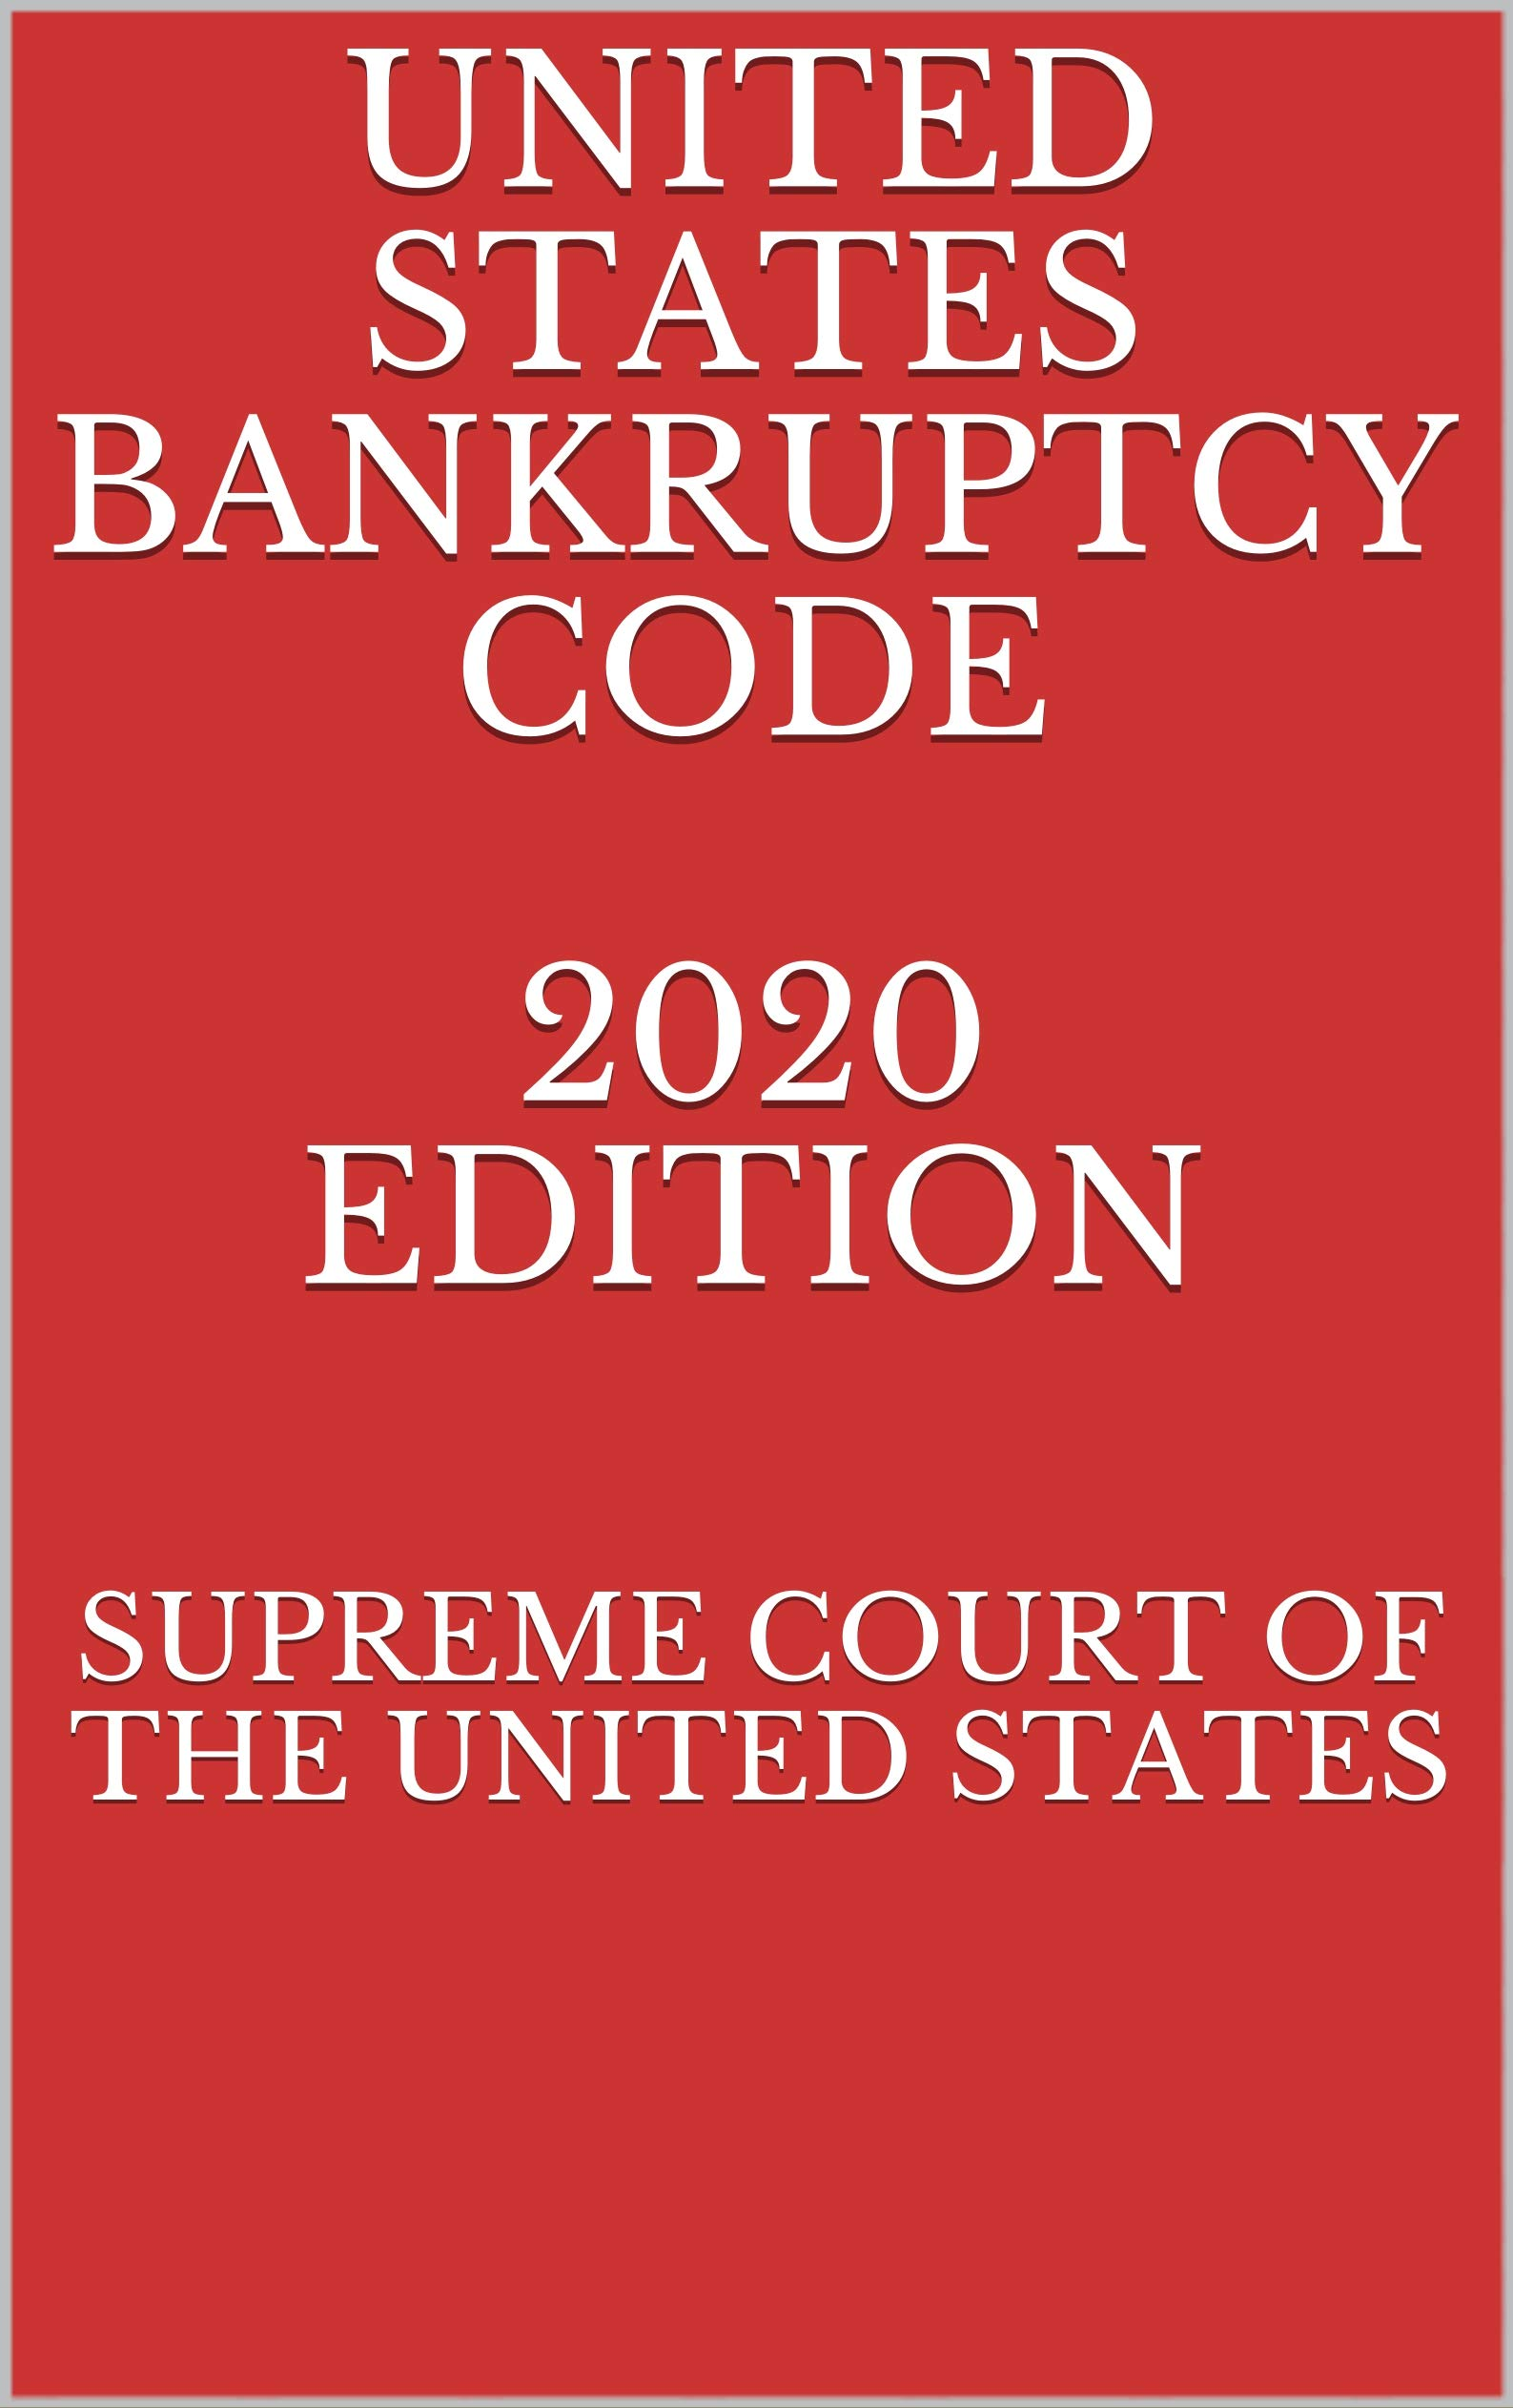 UNITED STATES BANKRUPTCY CODE 2020 EDITION